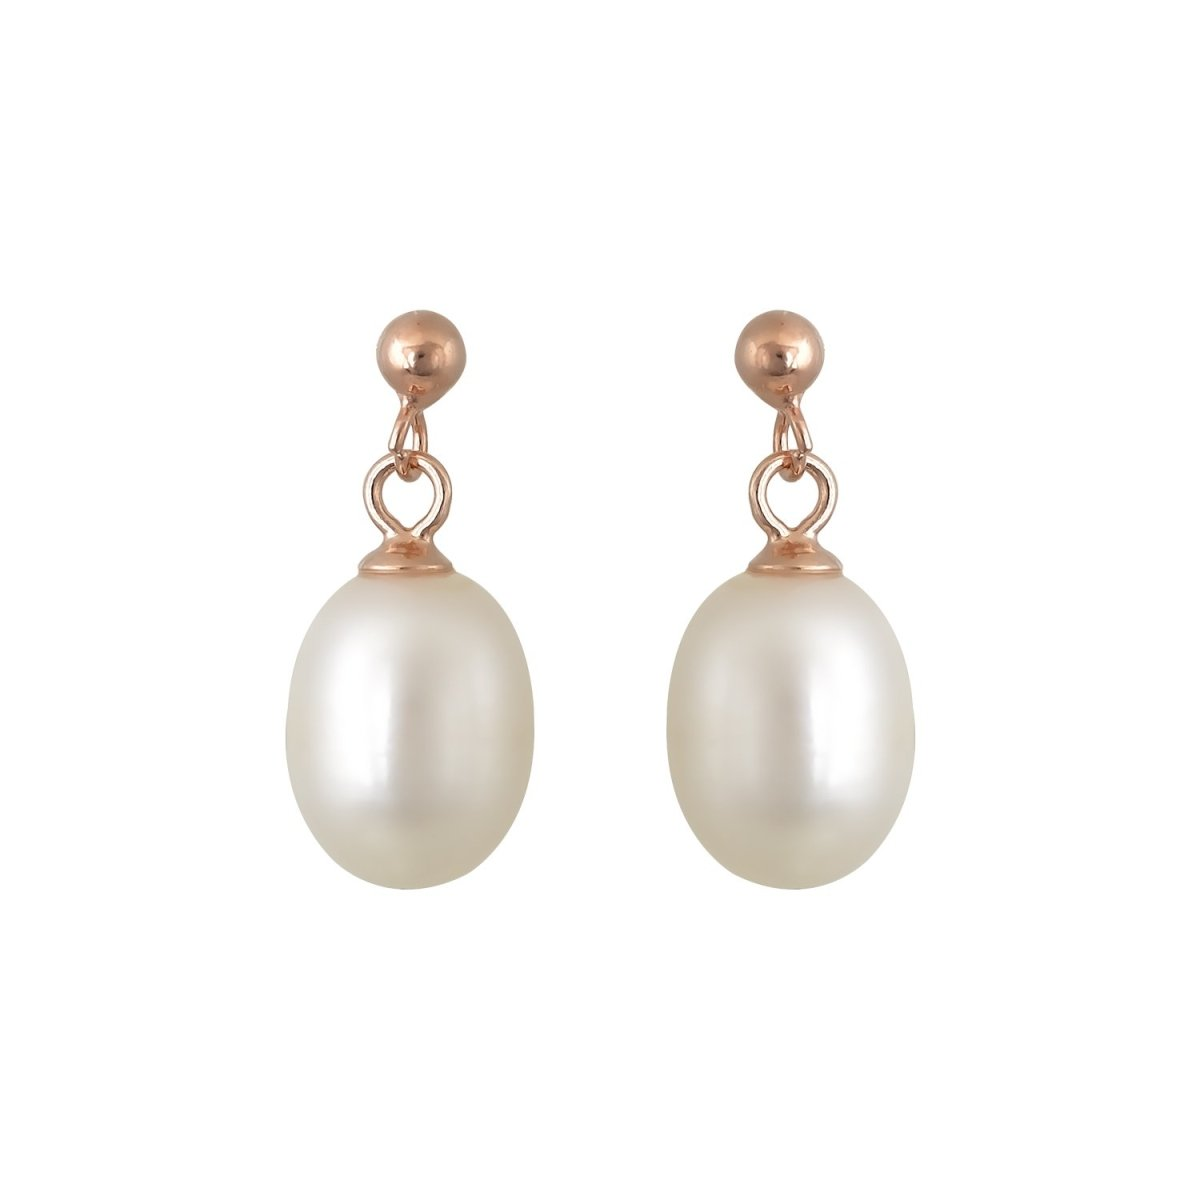 Earrings ER31362 Pendants with Rose Gold Plated Silver with Pearls - Goldy Jewelry Store